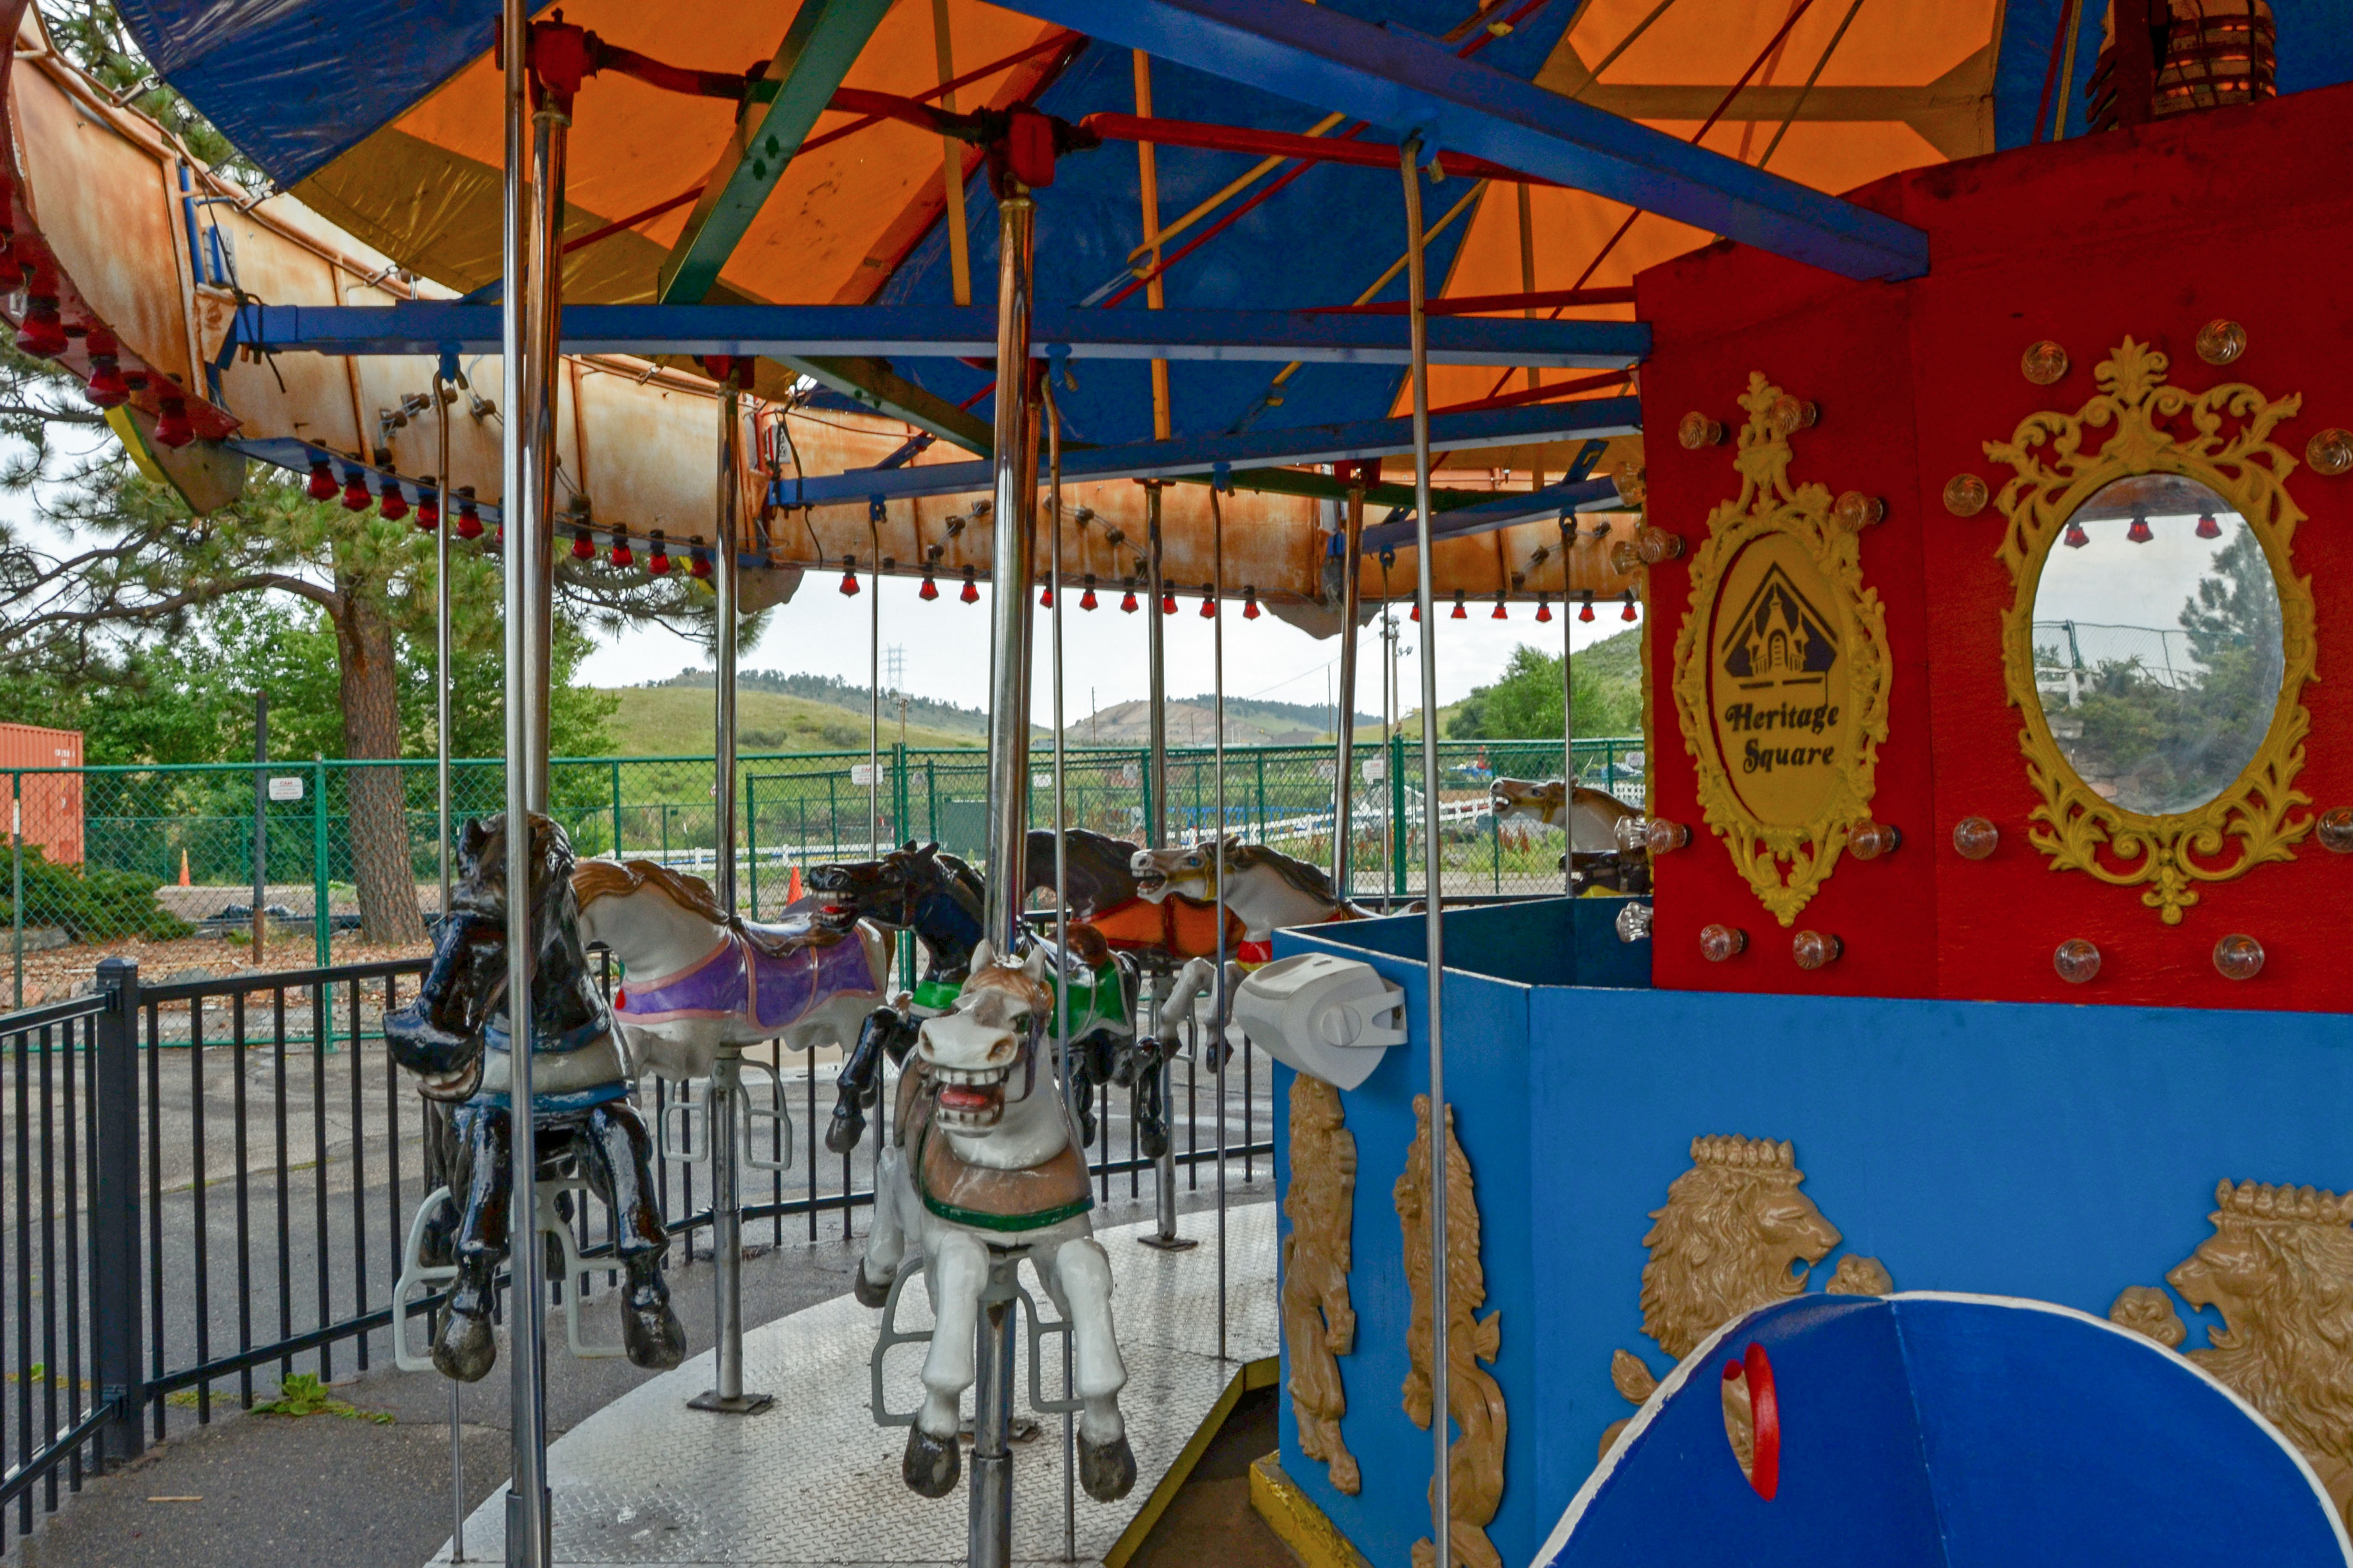 """<p>The carousel still bears the name """"Heritage Square"""" despite the fact that the park's landlord asked him to stop using the name.</p>"""